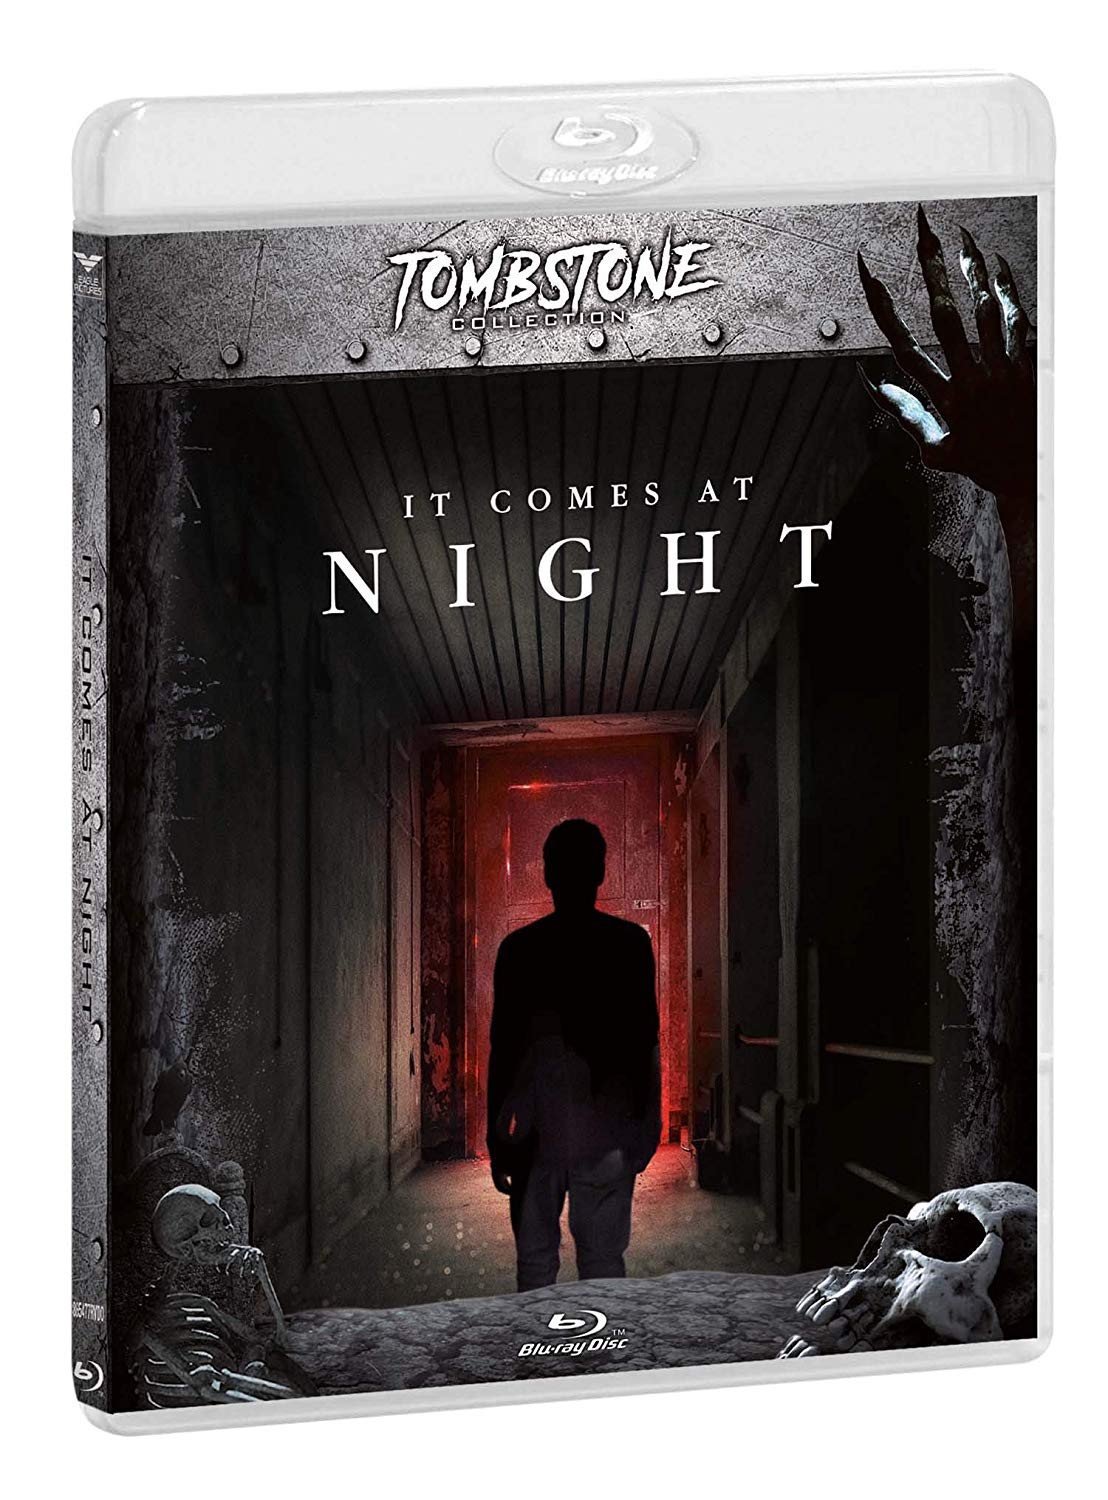 IT COMES AT NIGHT (TOMBSTONE COLLECTION) - BLU RAY